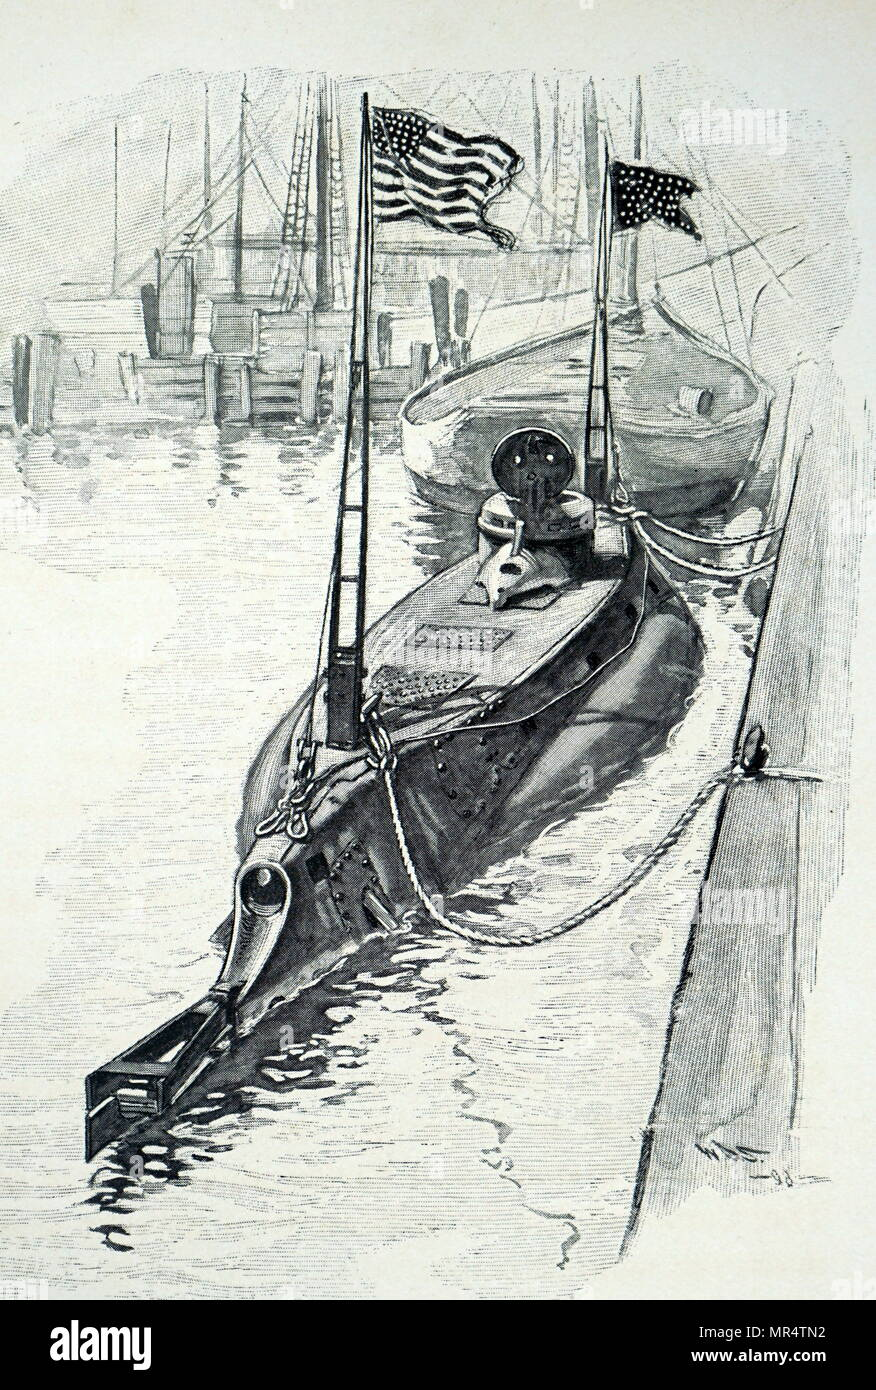 Illustration depicting John P. Holland's dual propulsion submarine. On the surface it was powered by a 160hp engine, and while under water a 70hp electric motor was used. John Philip Holland (1840-1914) an Irish engineer who developed the first submarine to be formally commissioned by the US Navy, and the first Royal Navy submarine, Holland 1. Dated 20th century - Stock Image